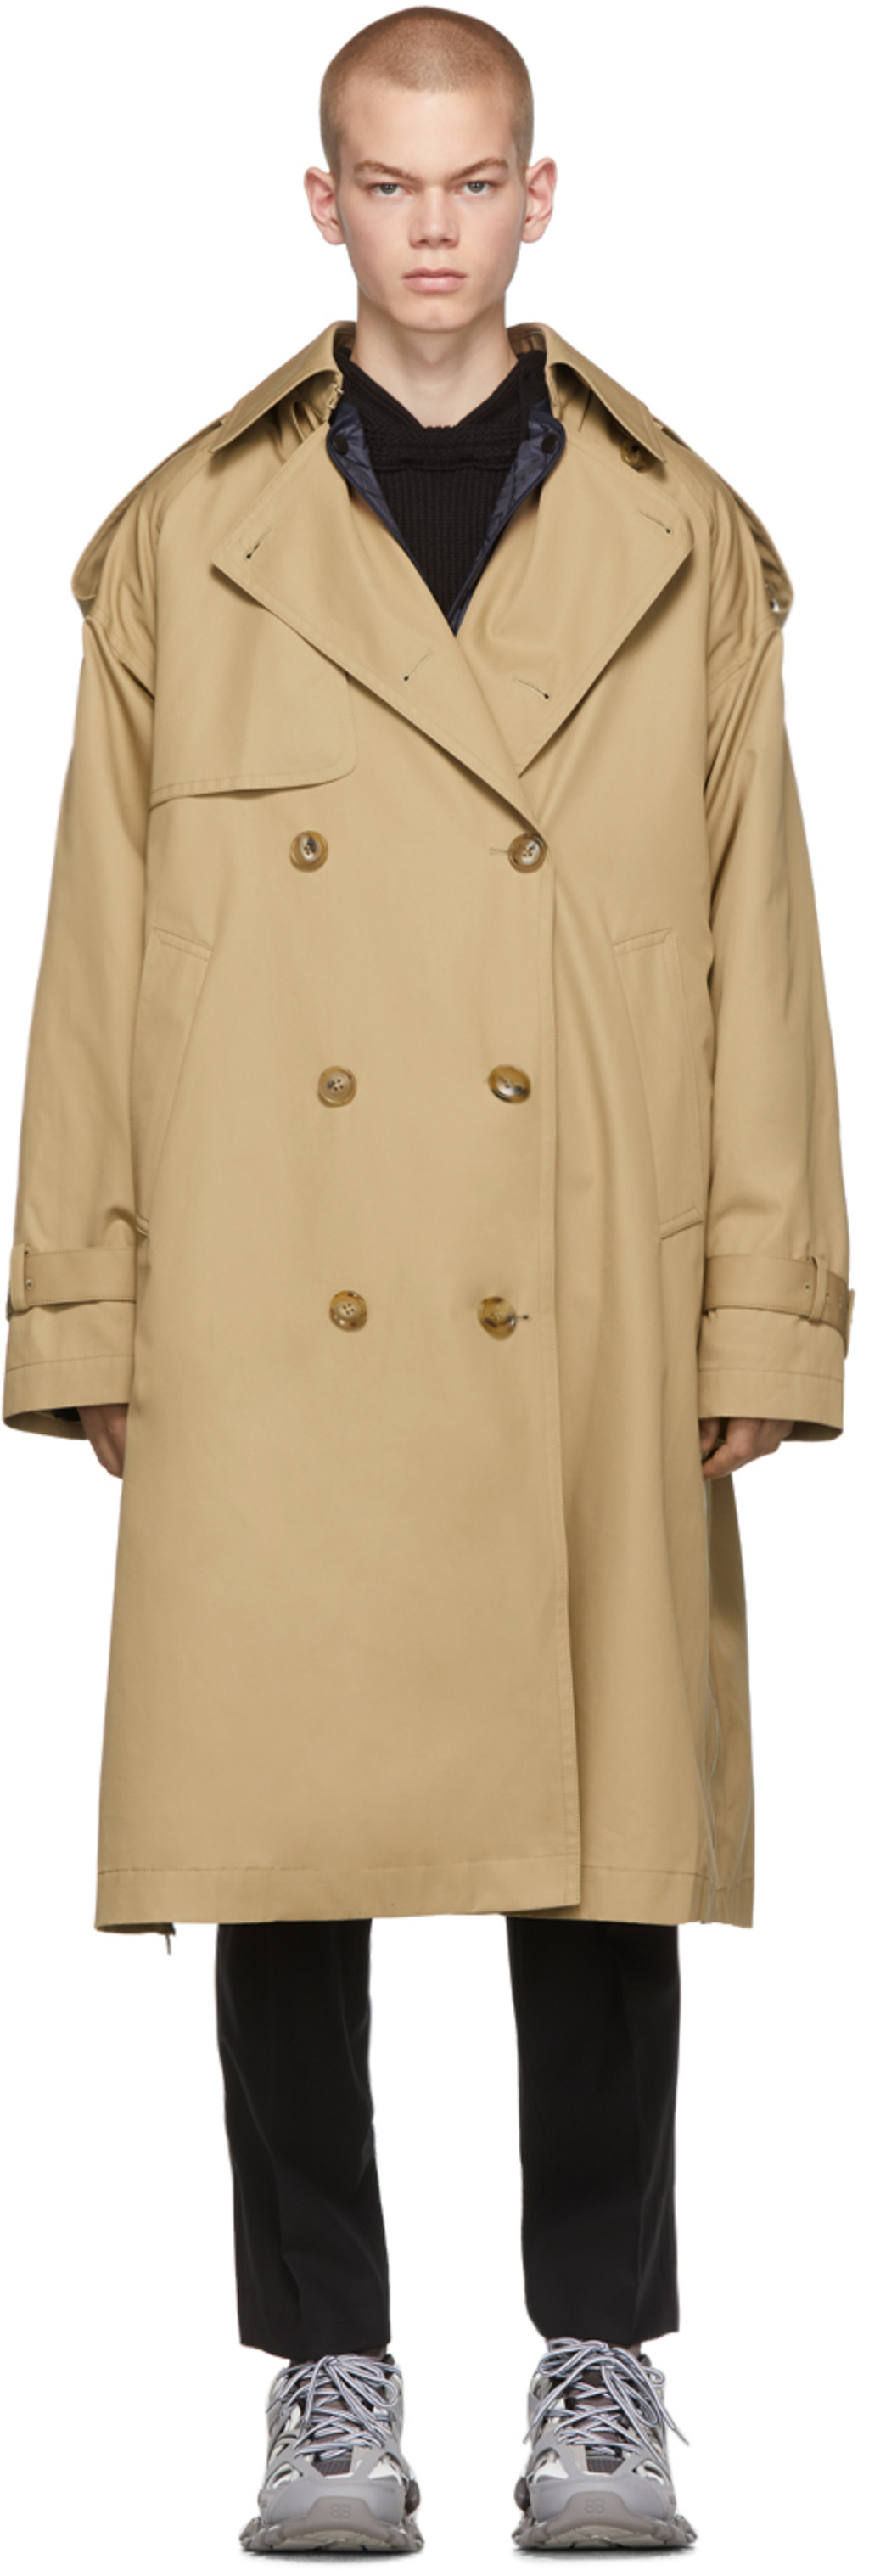 info for f0223 bf9a4 Beige Oversized Trench Coat